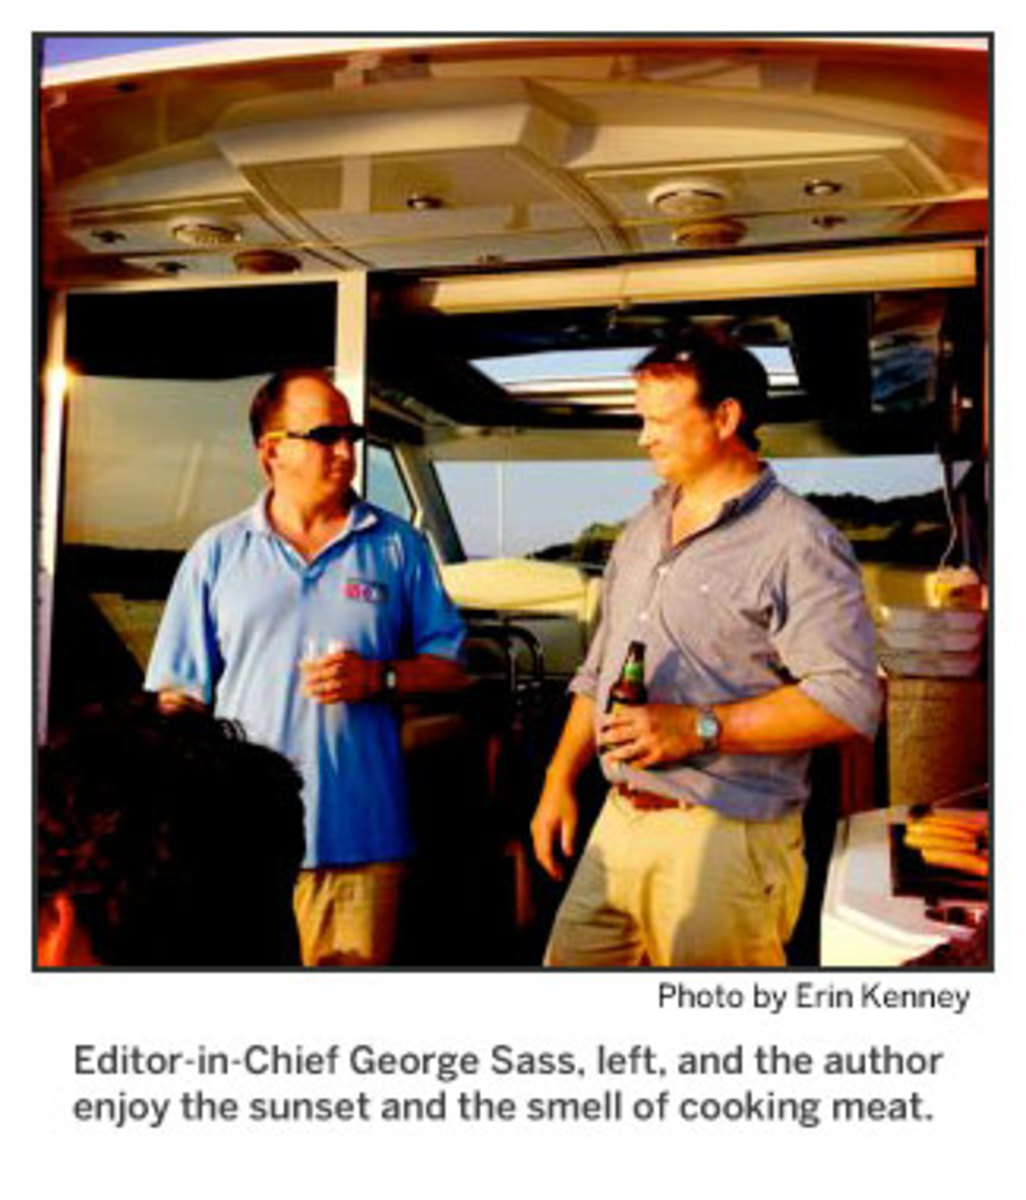 Editor-in-Chief George Sass, left, and the author enjoy the sunset and the smell of cooking meat. Photo by Erin Kenney